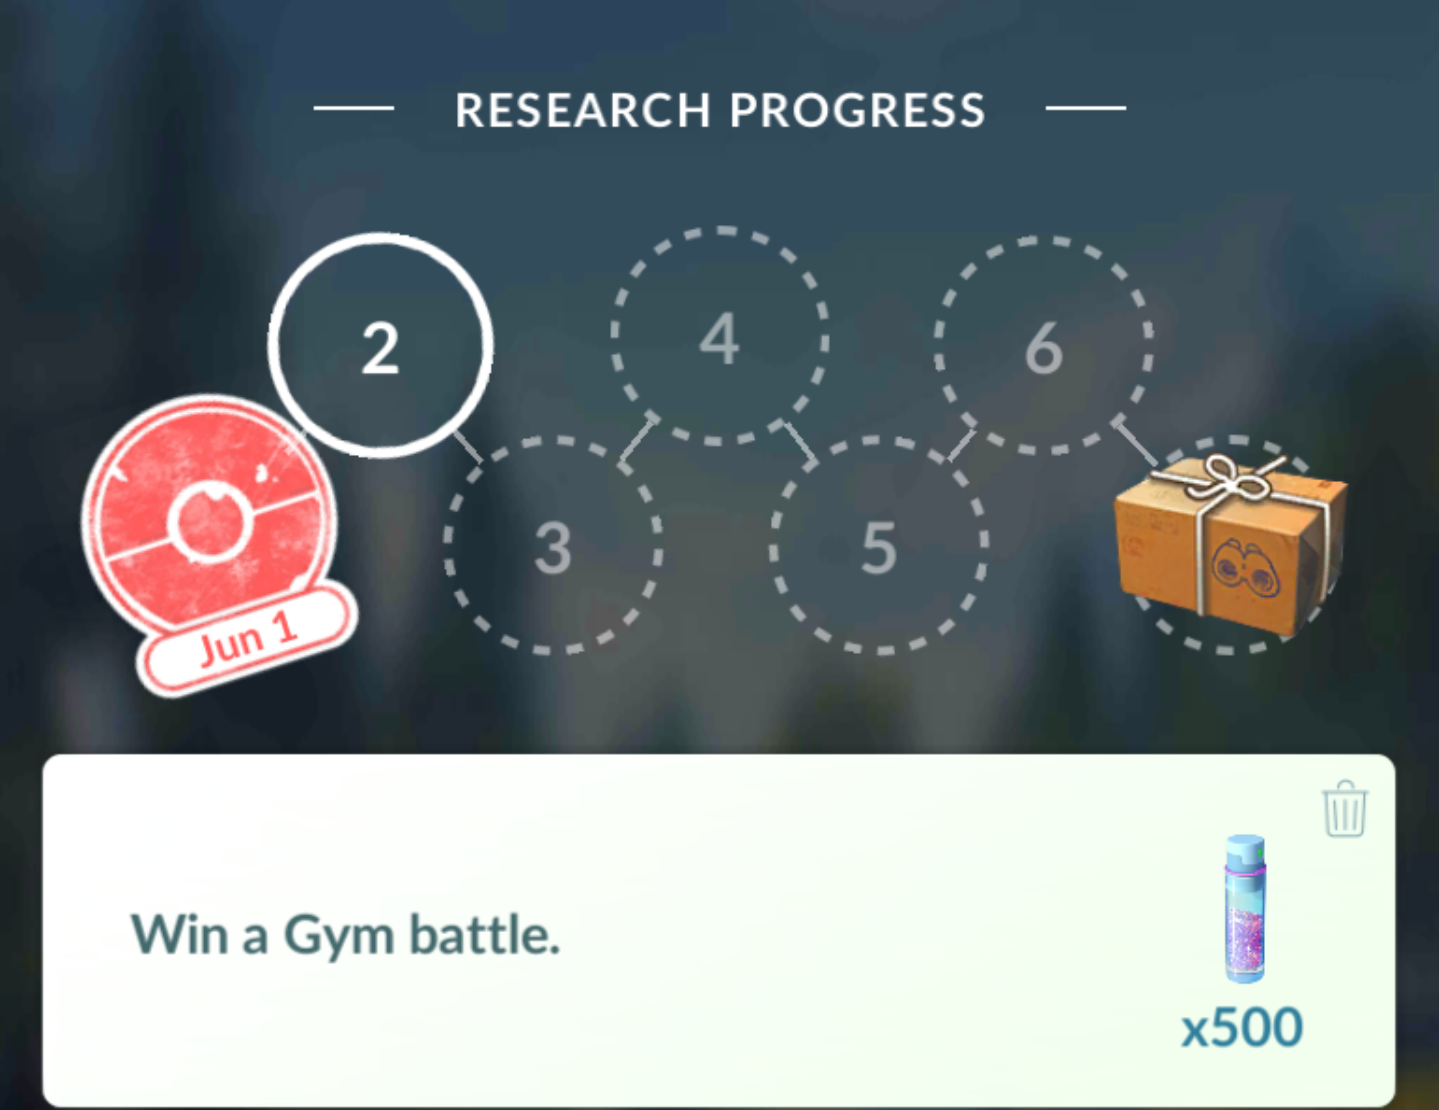 researchTasks